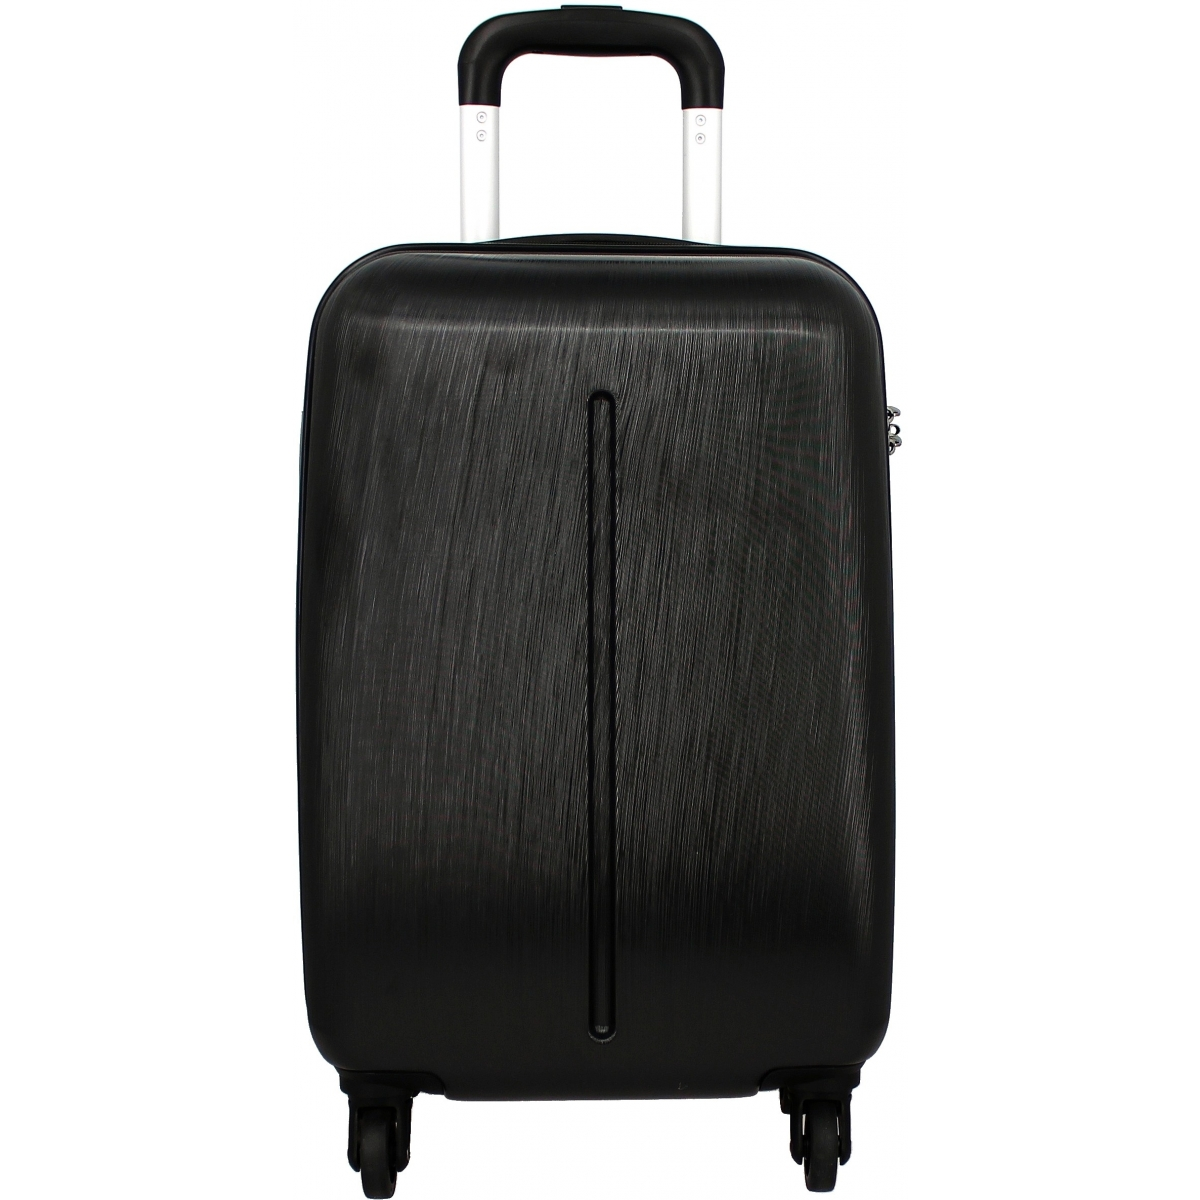 valise cabine ryanair david jones 54 5 cm tsa ba10141p couleur principale noir promotion. Black Bedroom Furniture Sets. Home Design Ideas